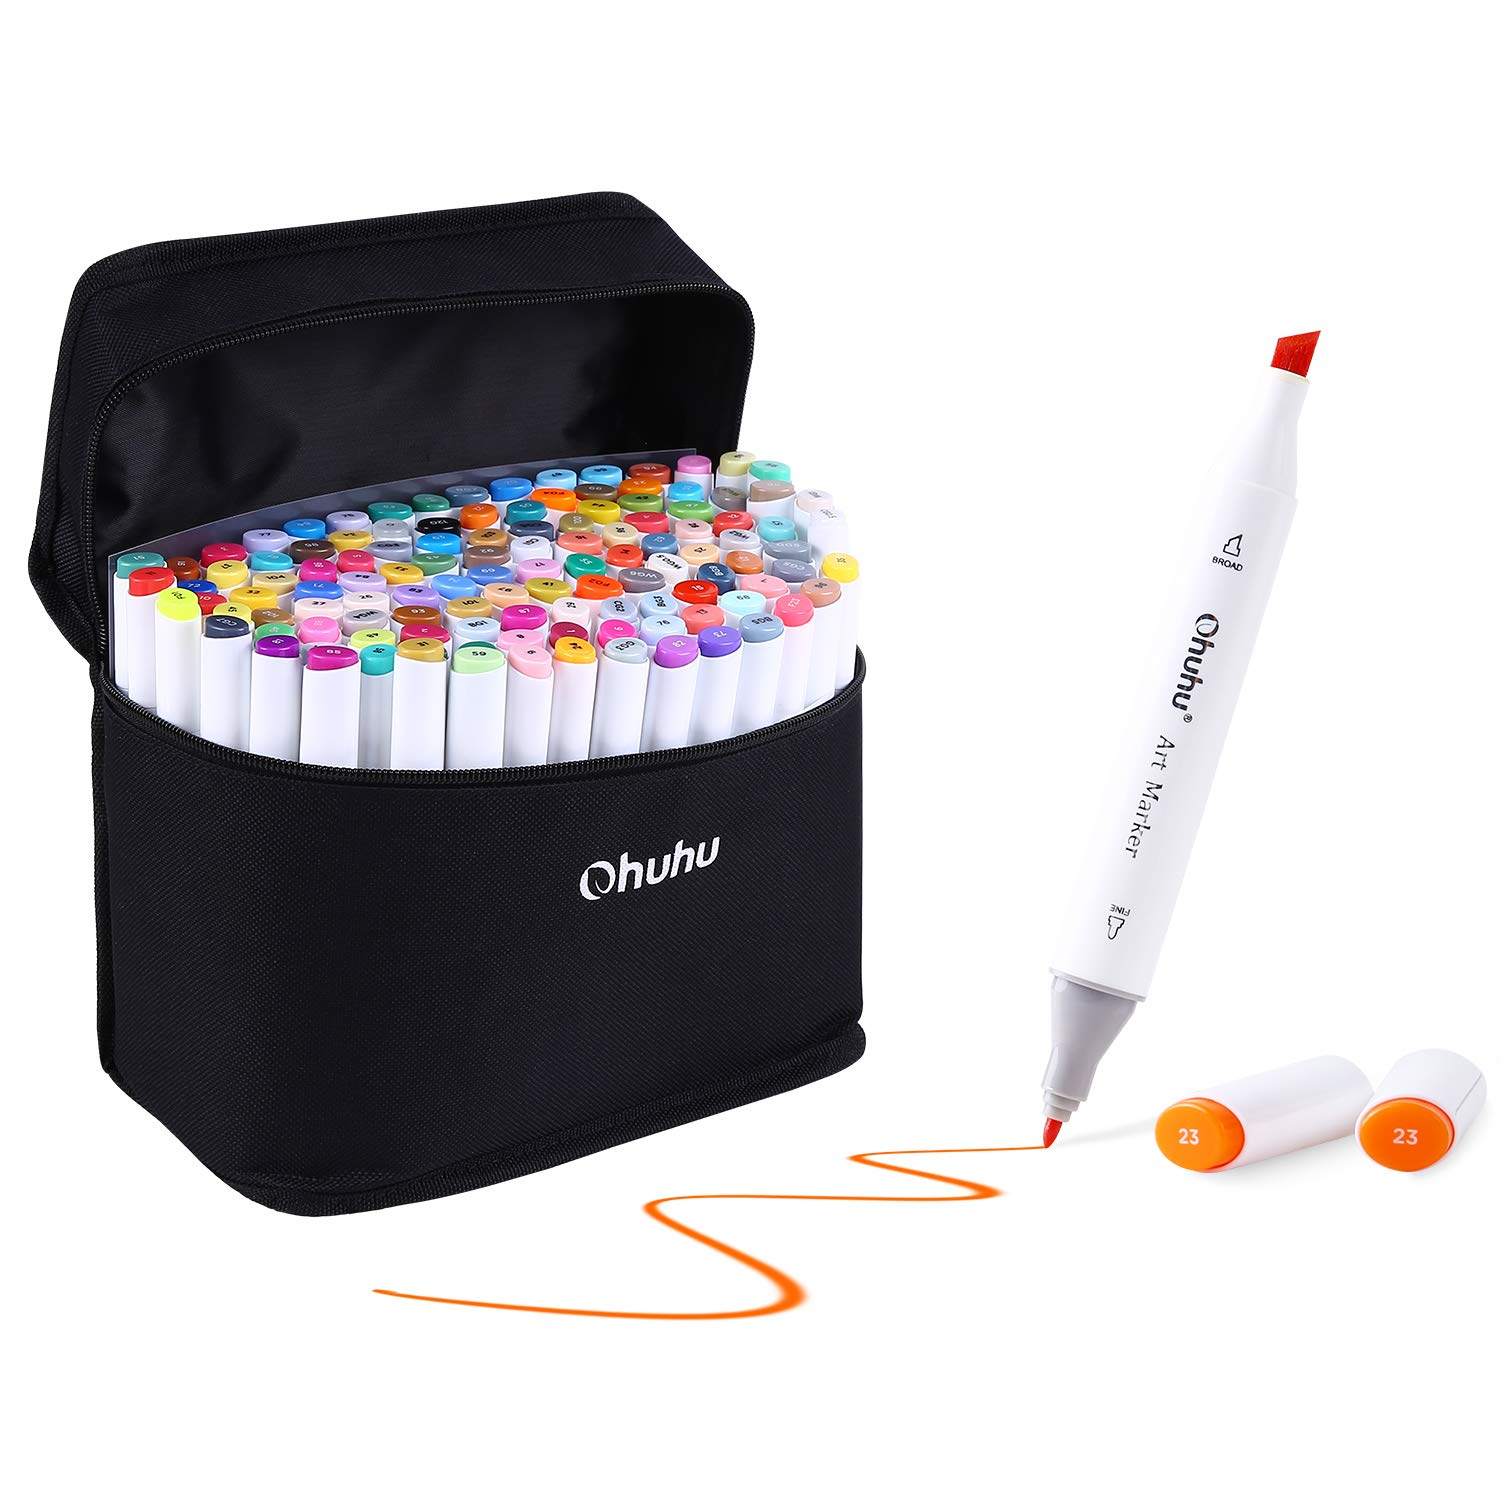 Ohuhu 120 Colors Dual Tips Sketch Marker Pens Art Markers Set with Carrying Case for Drawing Sketching Adult Coloring Books, Great Mothers' Day Gift Idea